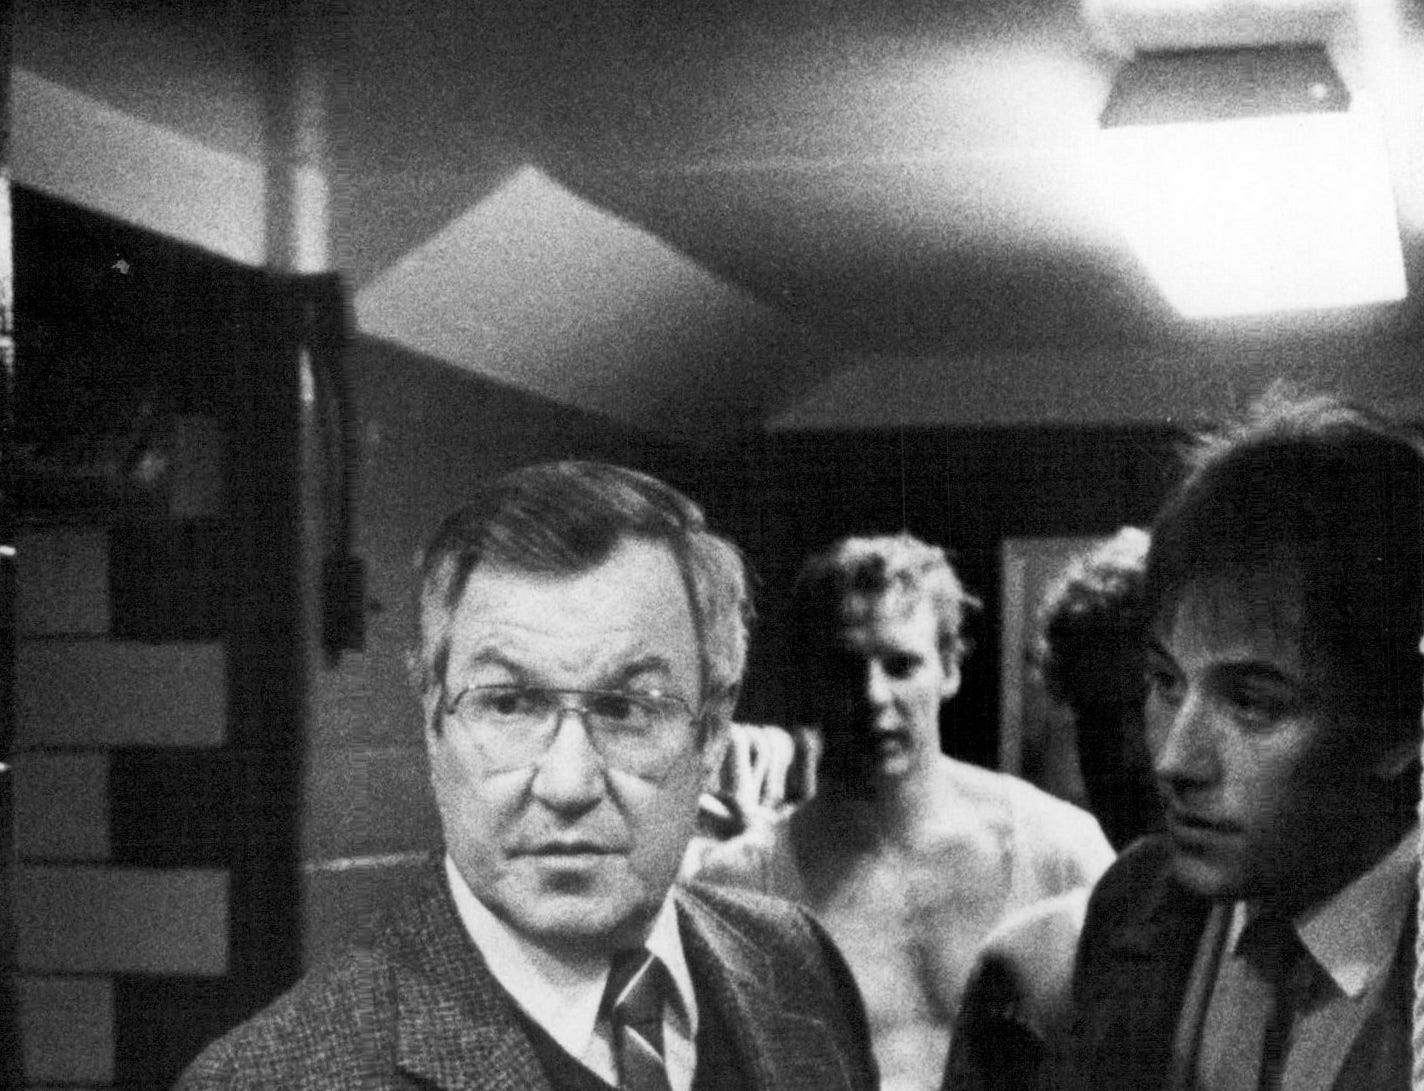 Joe Crozier stands outside the Rochester Americans' locker room after a loss to Binghamton during the 1983-84 season.